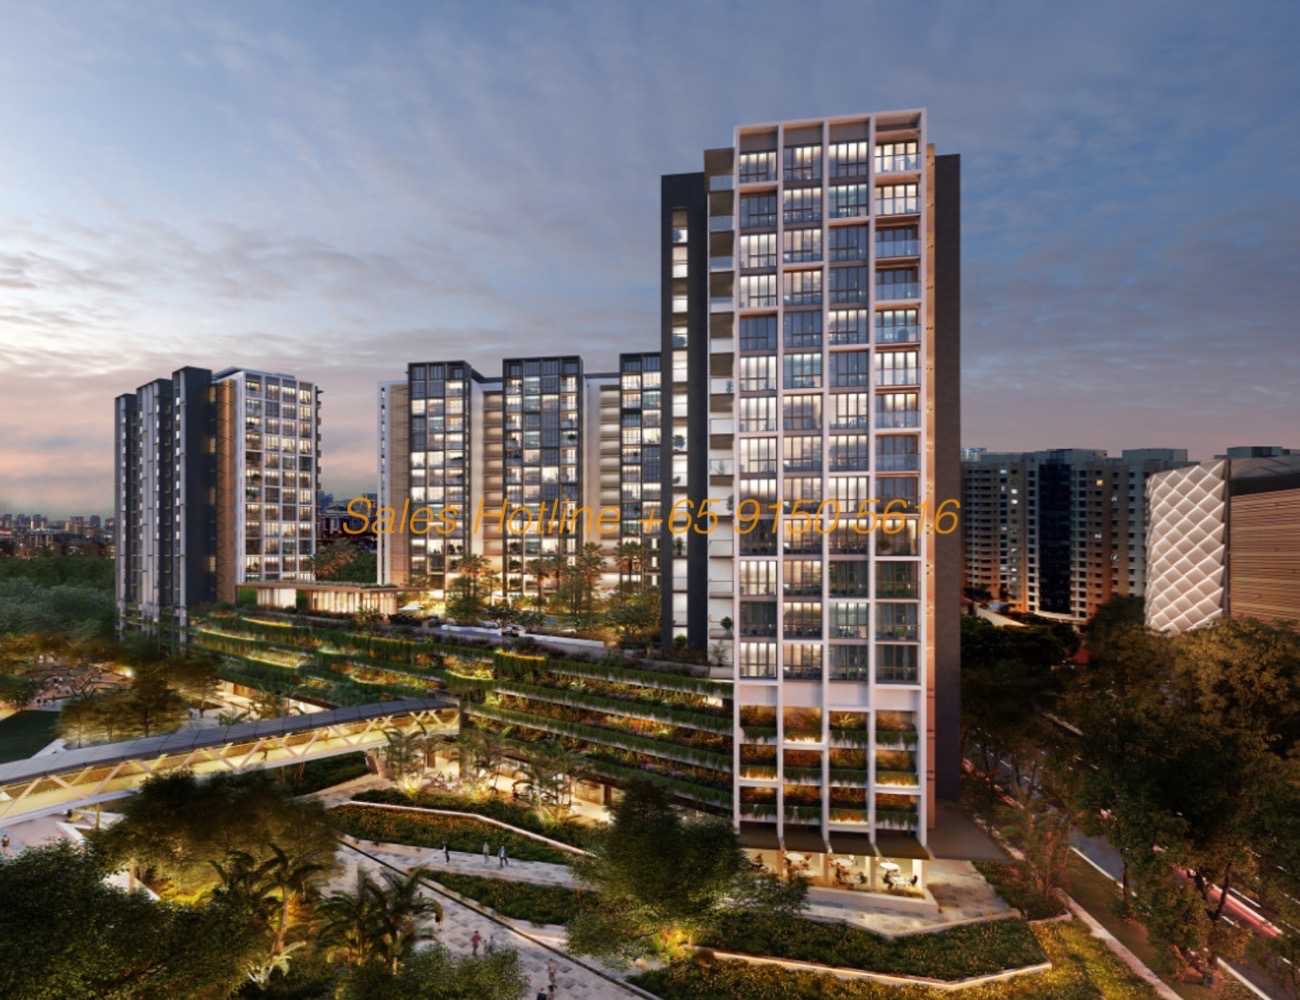 Park Place Residences - Night